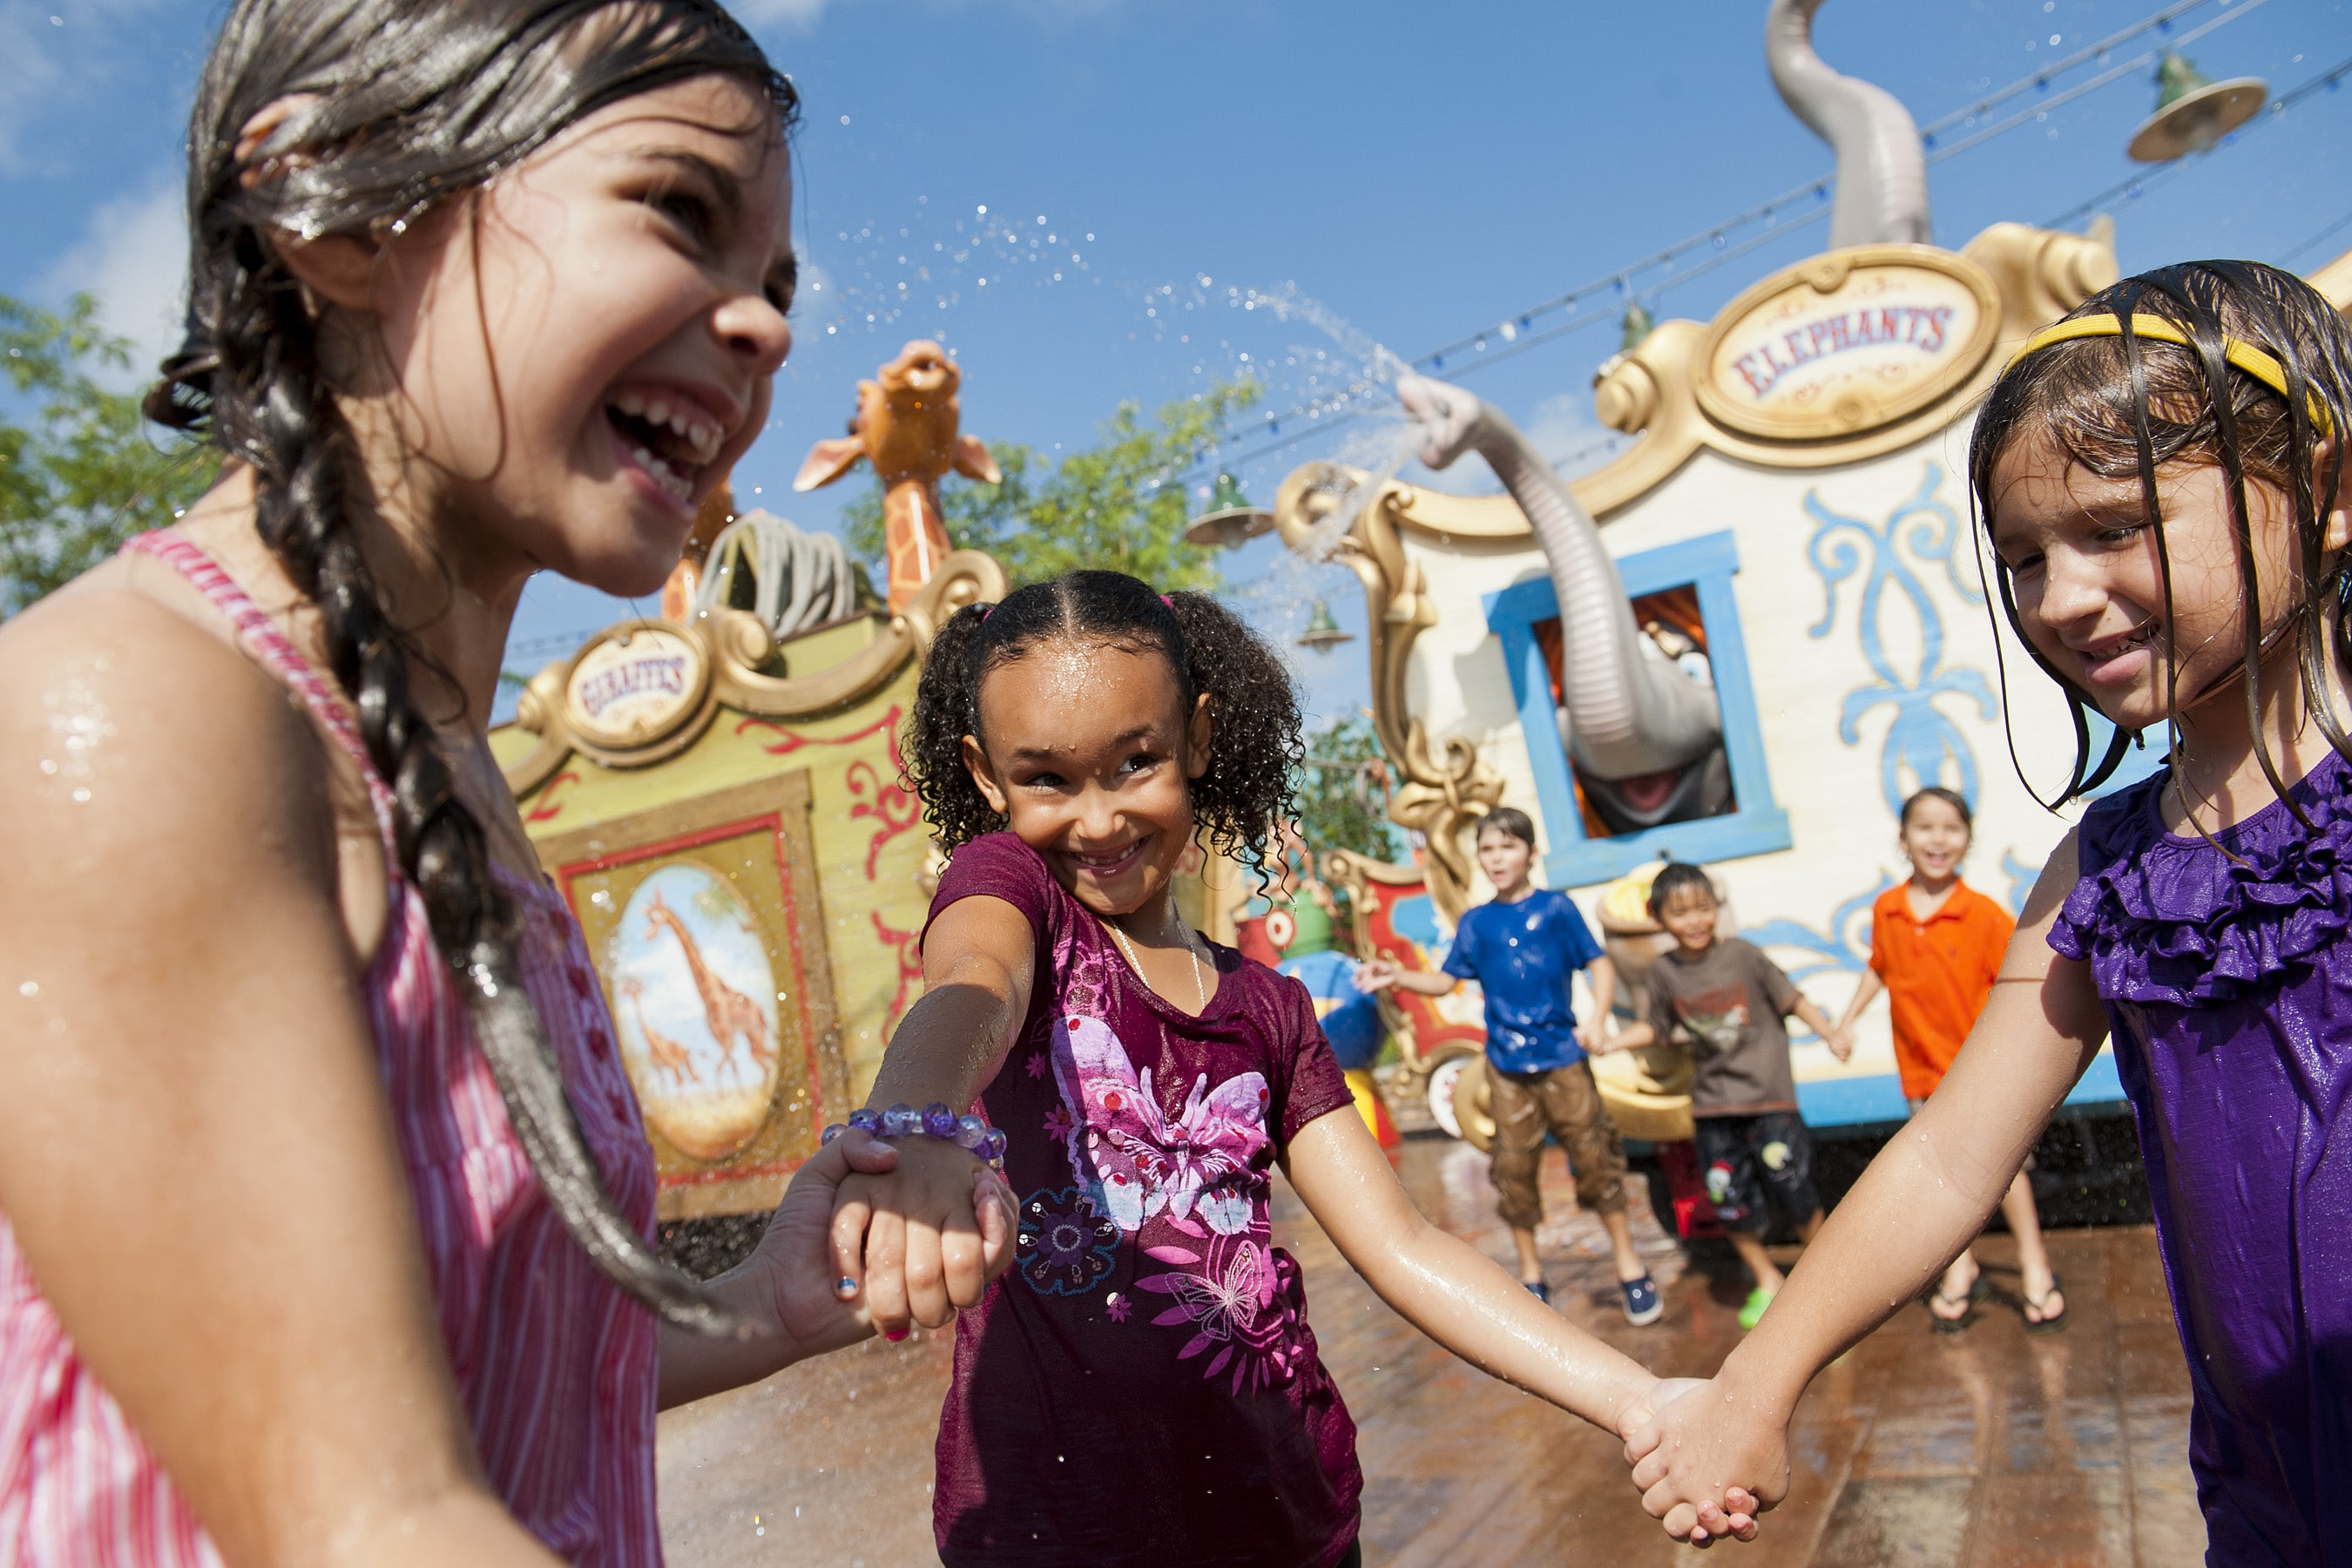 How to stay cool in Florida at Storybook Circus splash pad in Magic Kingdom